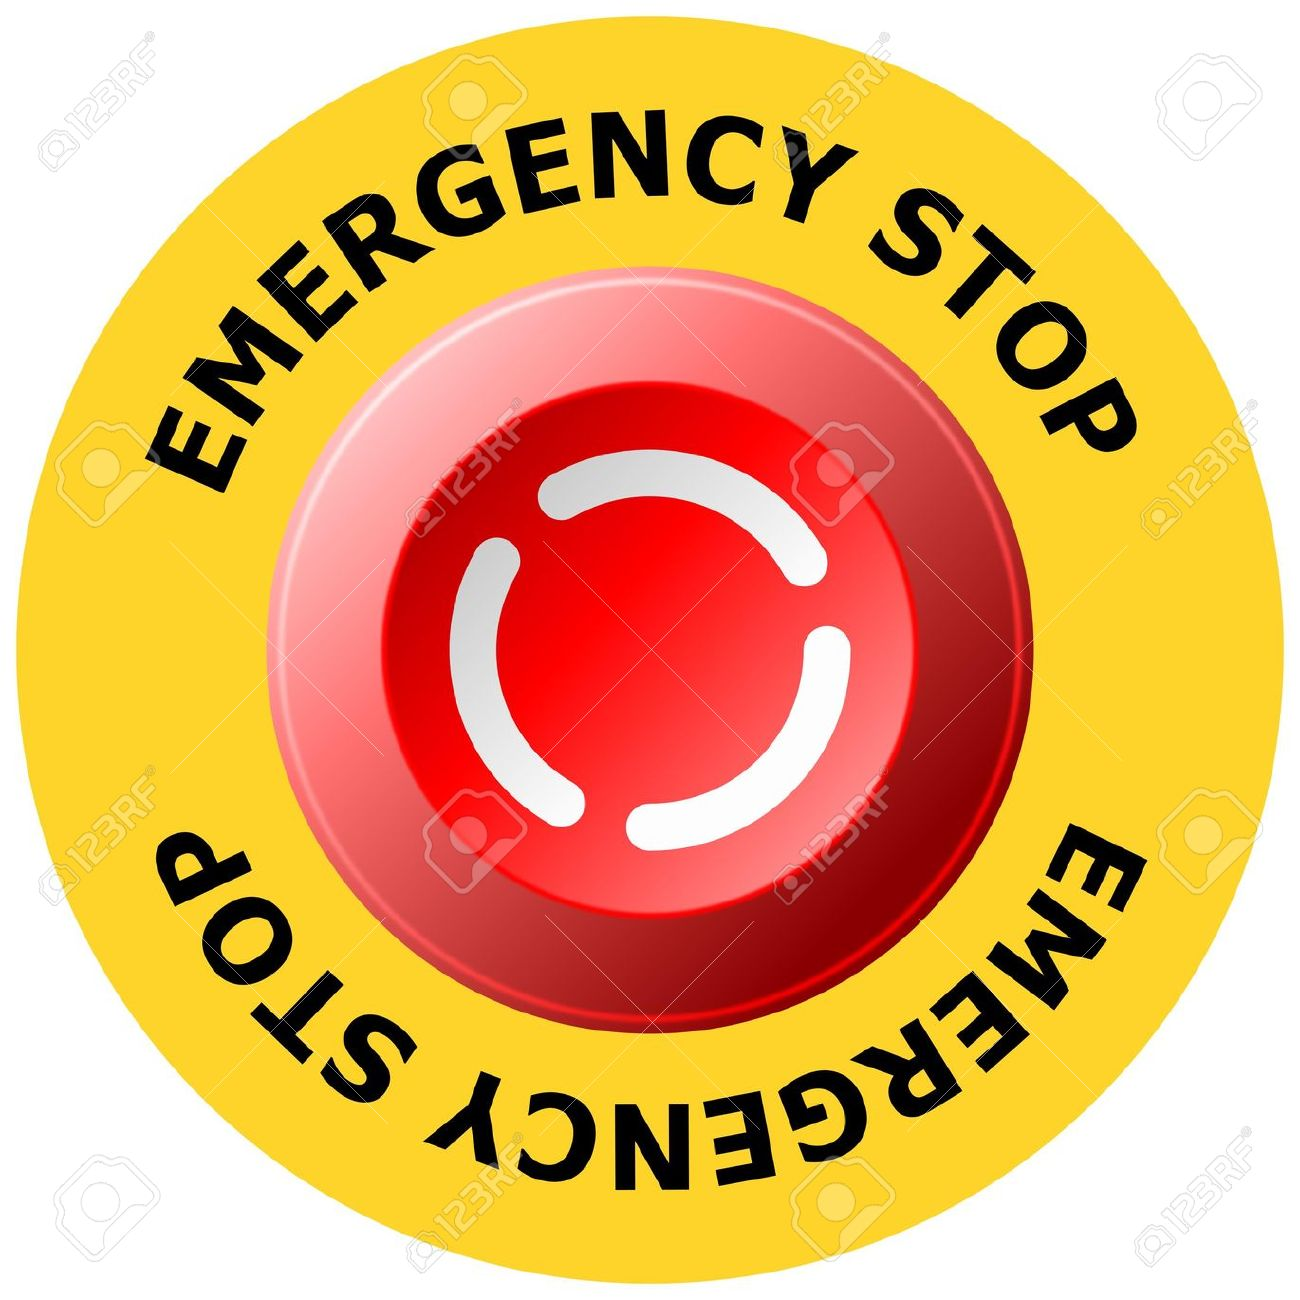 Emergency Stop Button Royalty Free Cliparts, Vectors, And Stock.